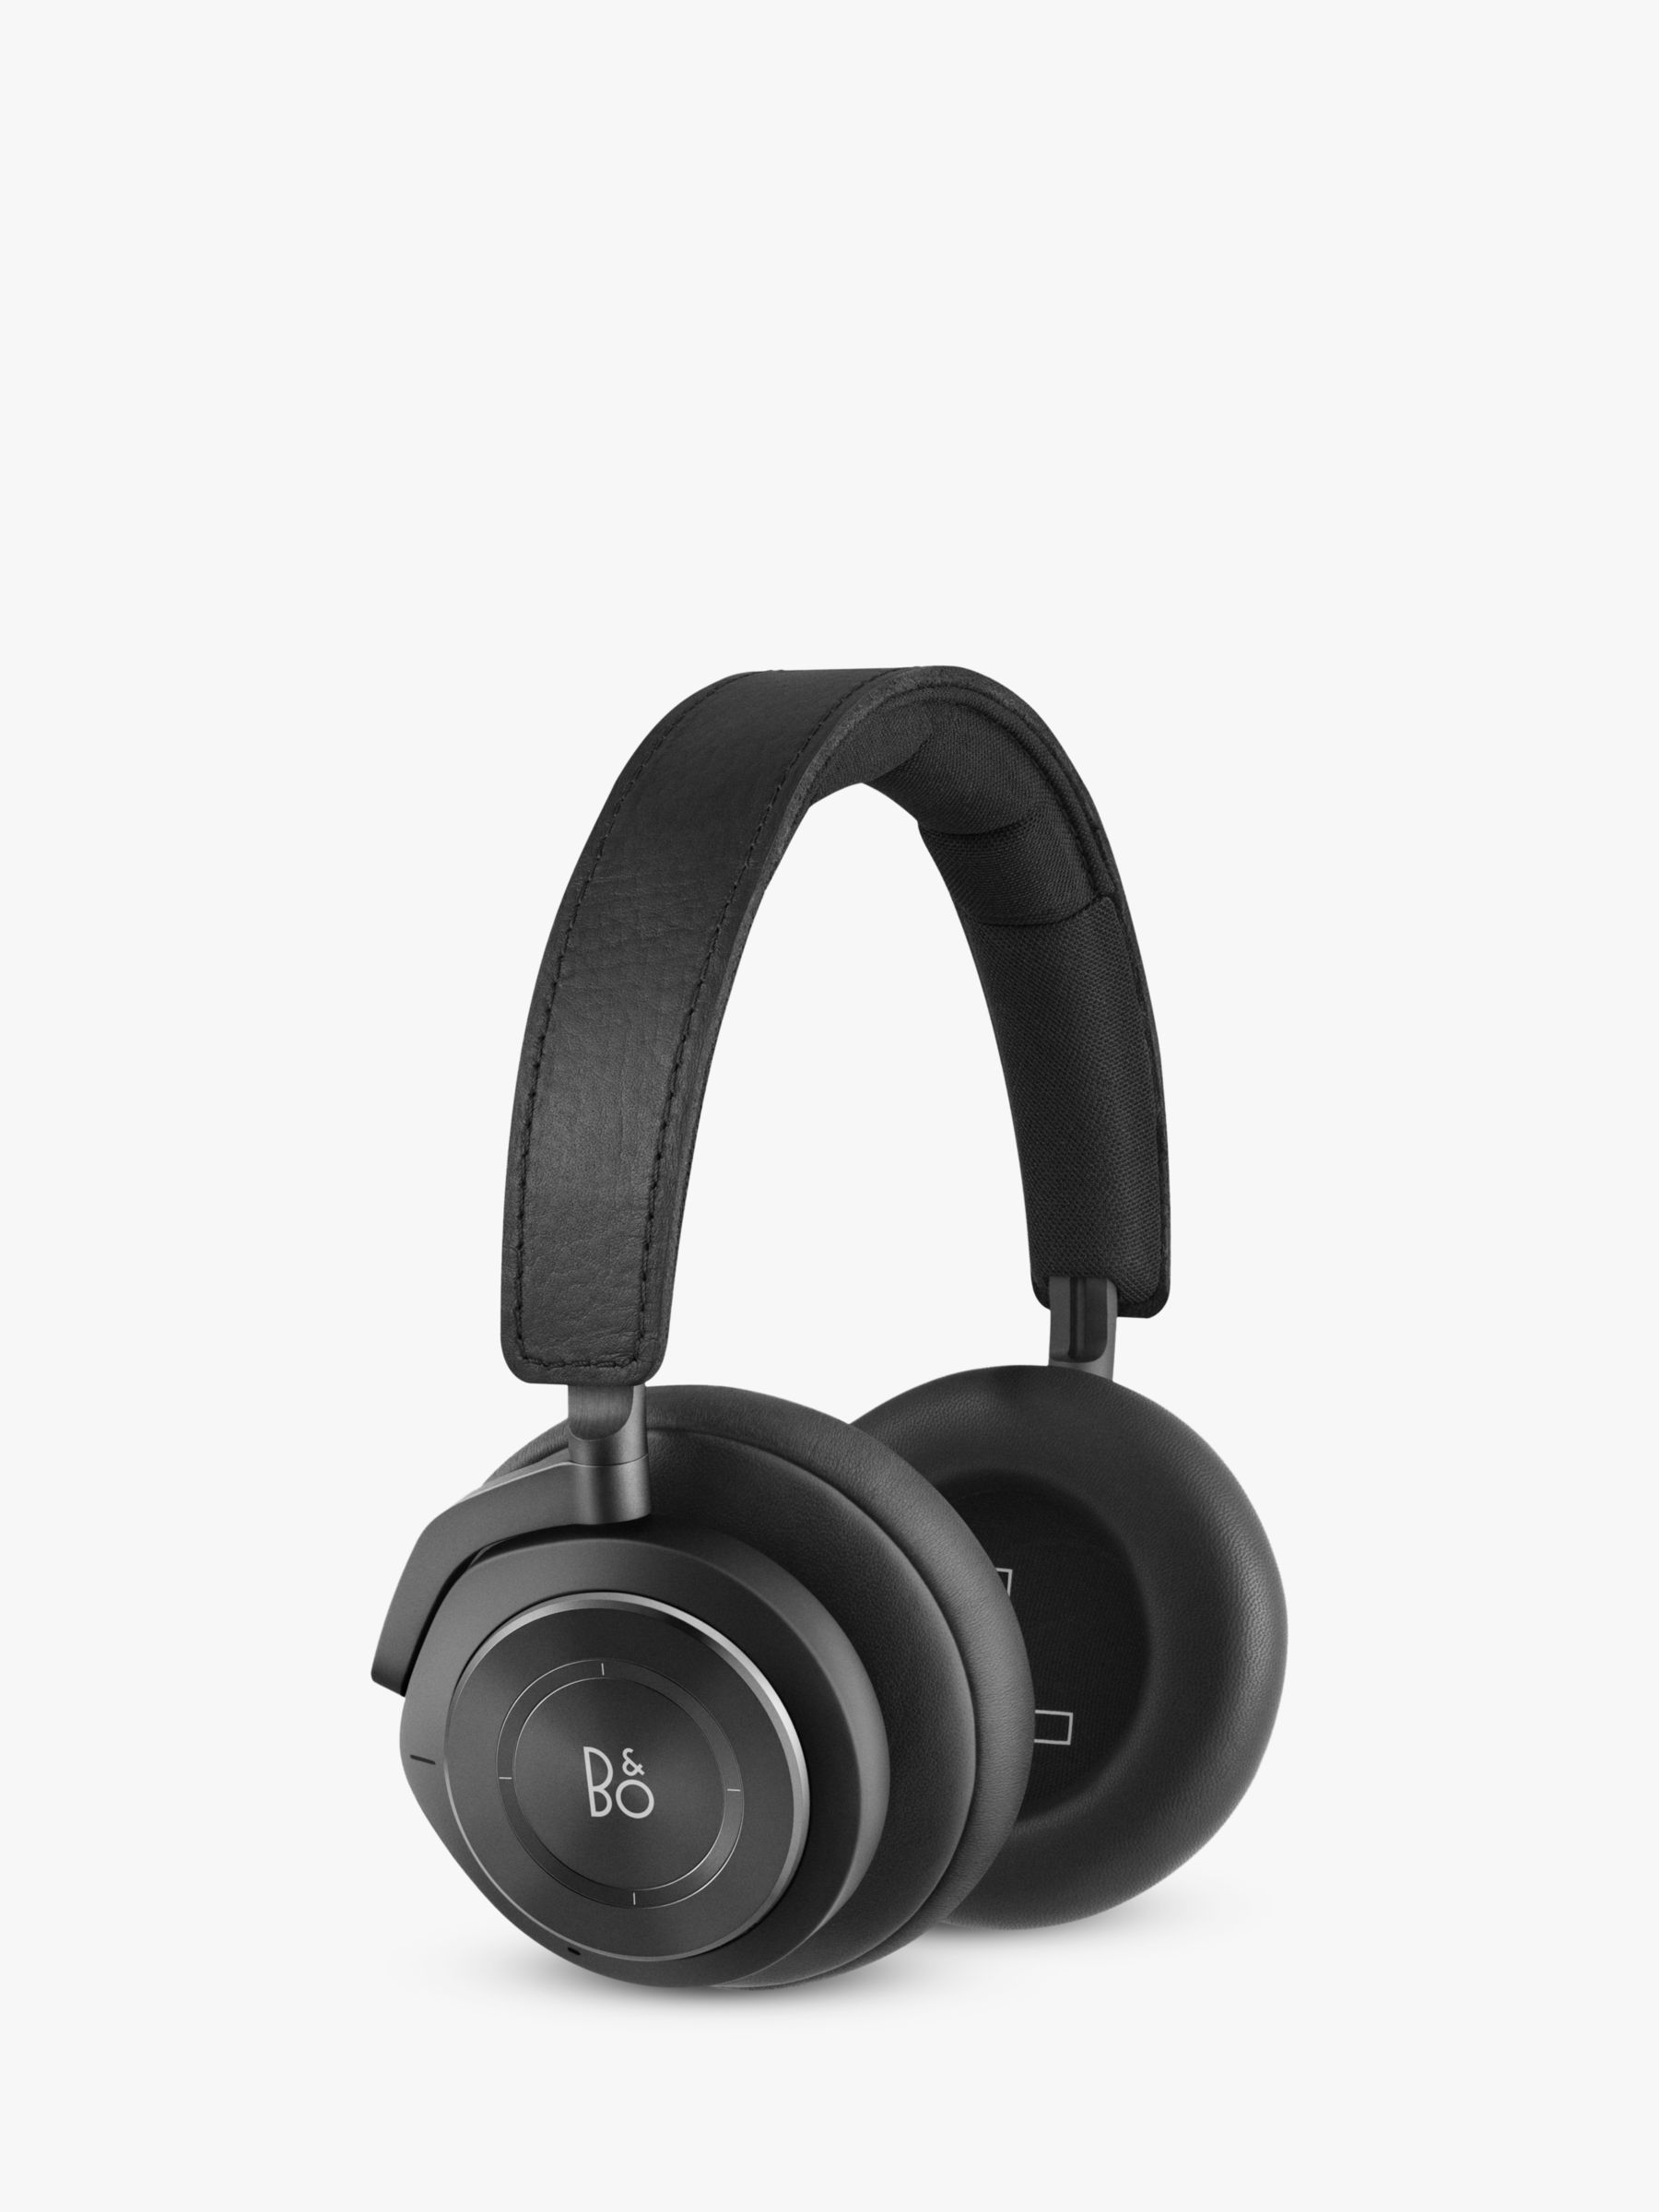 Bang & Olufsen Bang & Olufsen Beoplay H9 Wireless Bluetooth Active Noise Cancelling Over-Ear Headphones with Intuitive Touch Controls & Voice Assistant Button